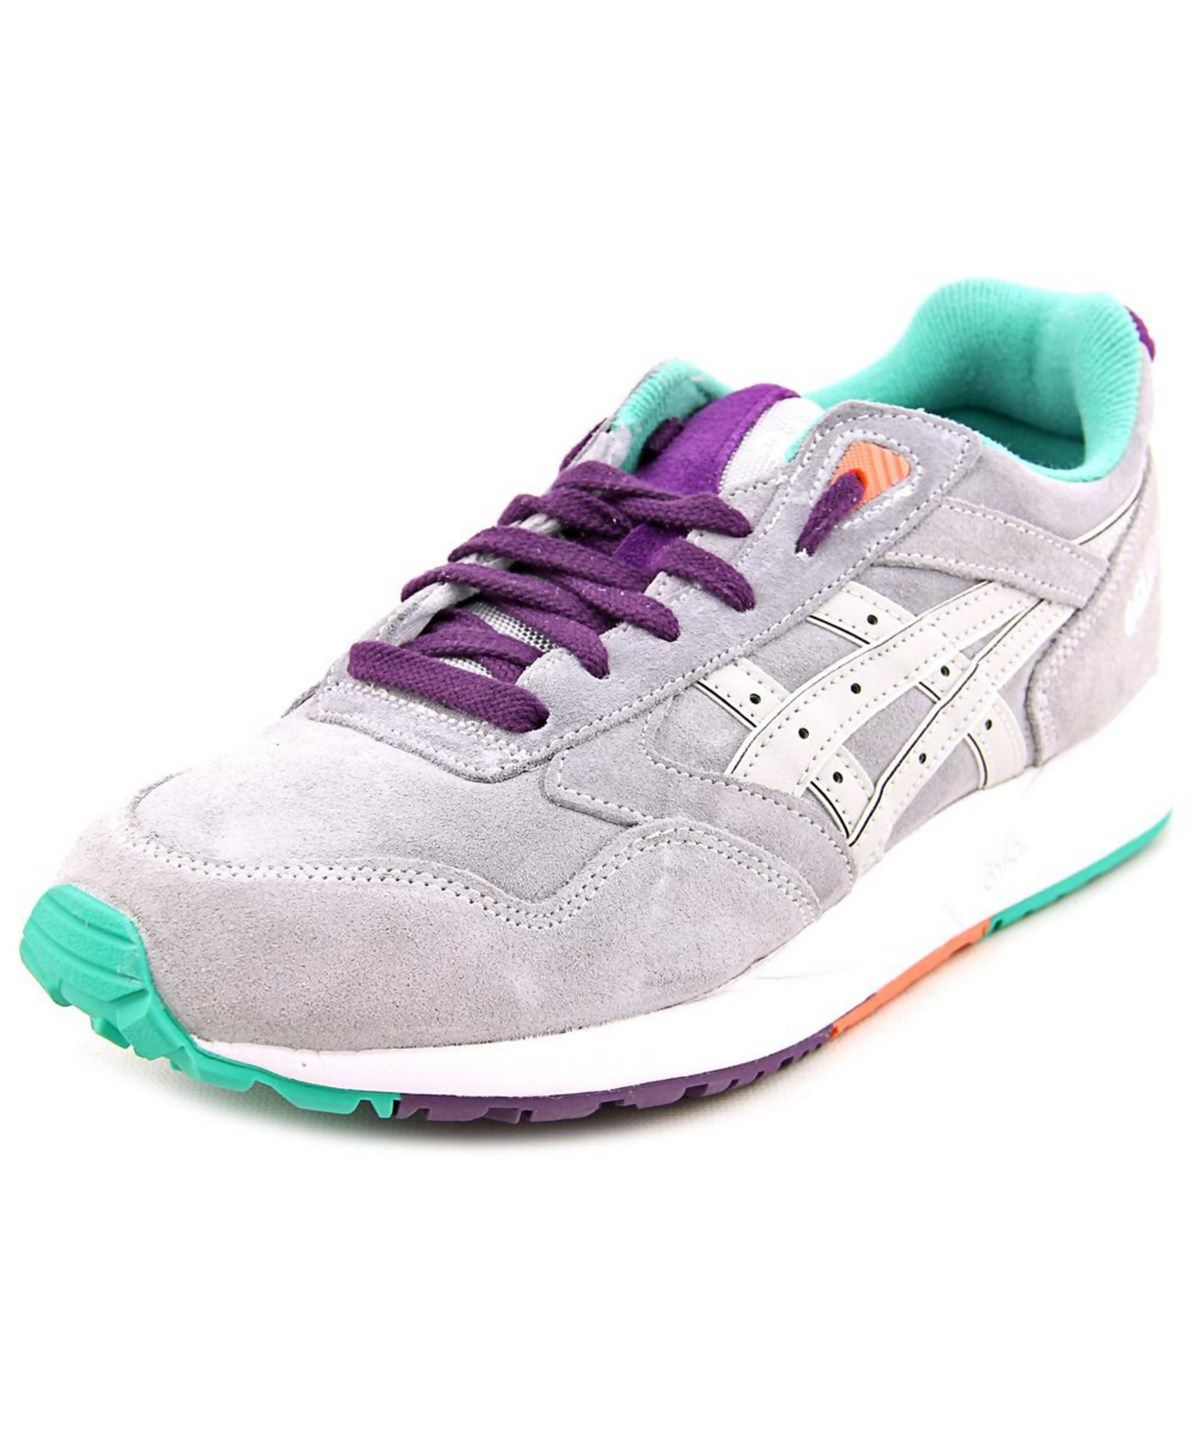 ASICS Asics Gel Saga Men Round Toe Suede Walking Shoe